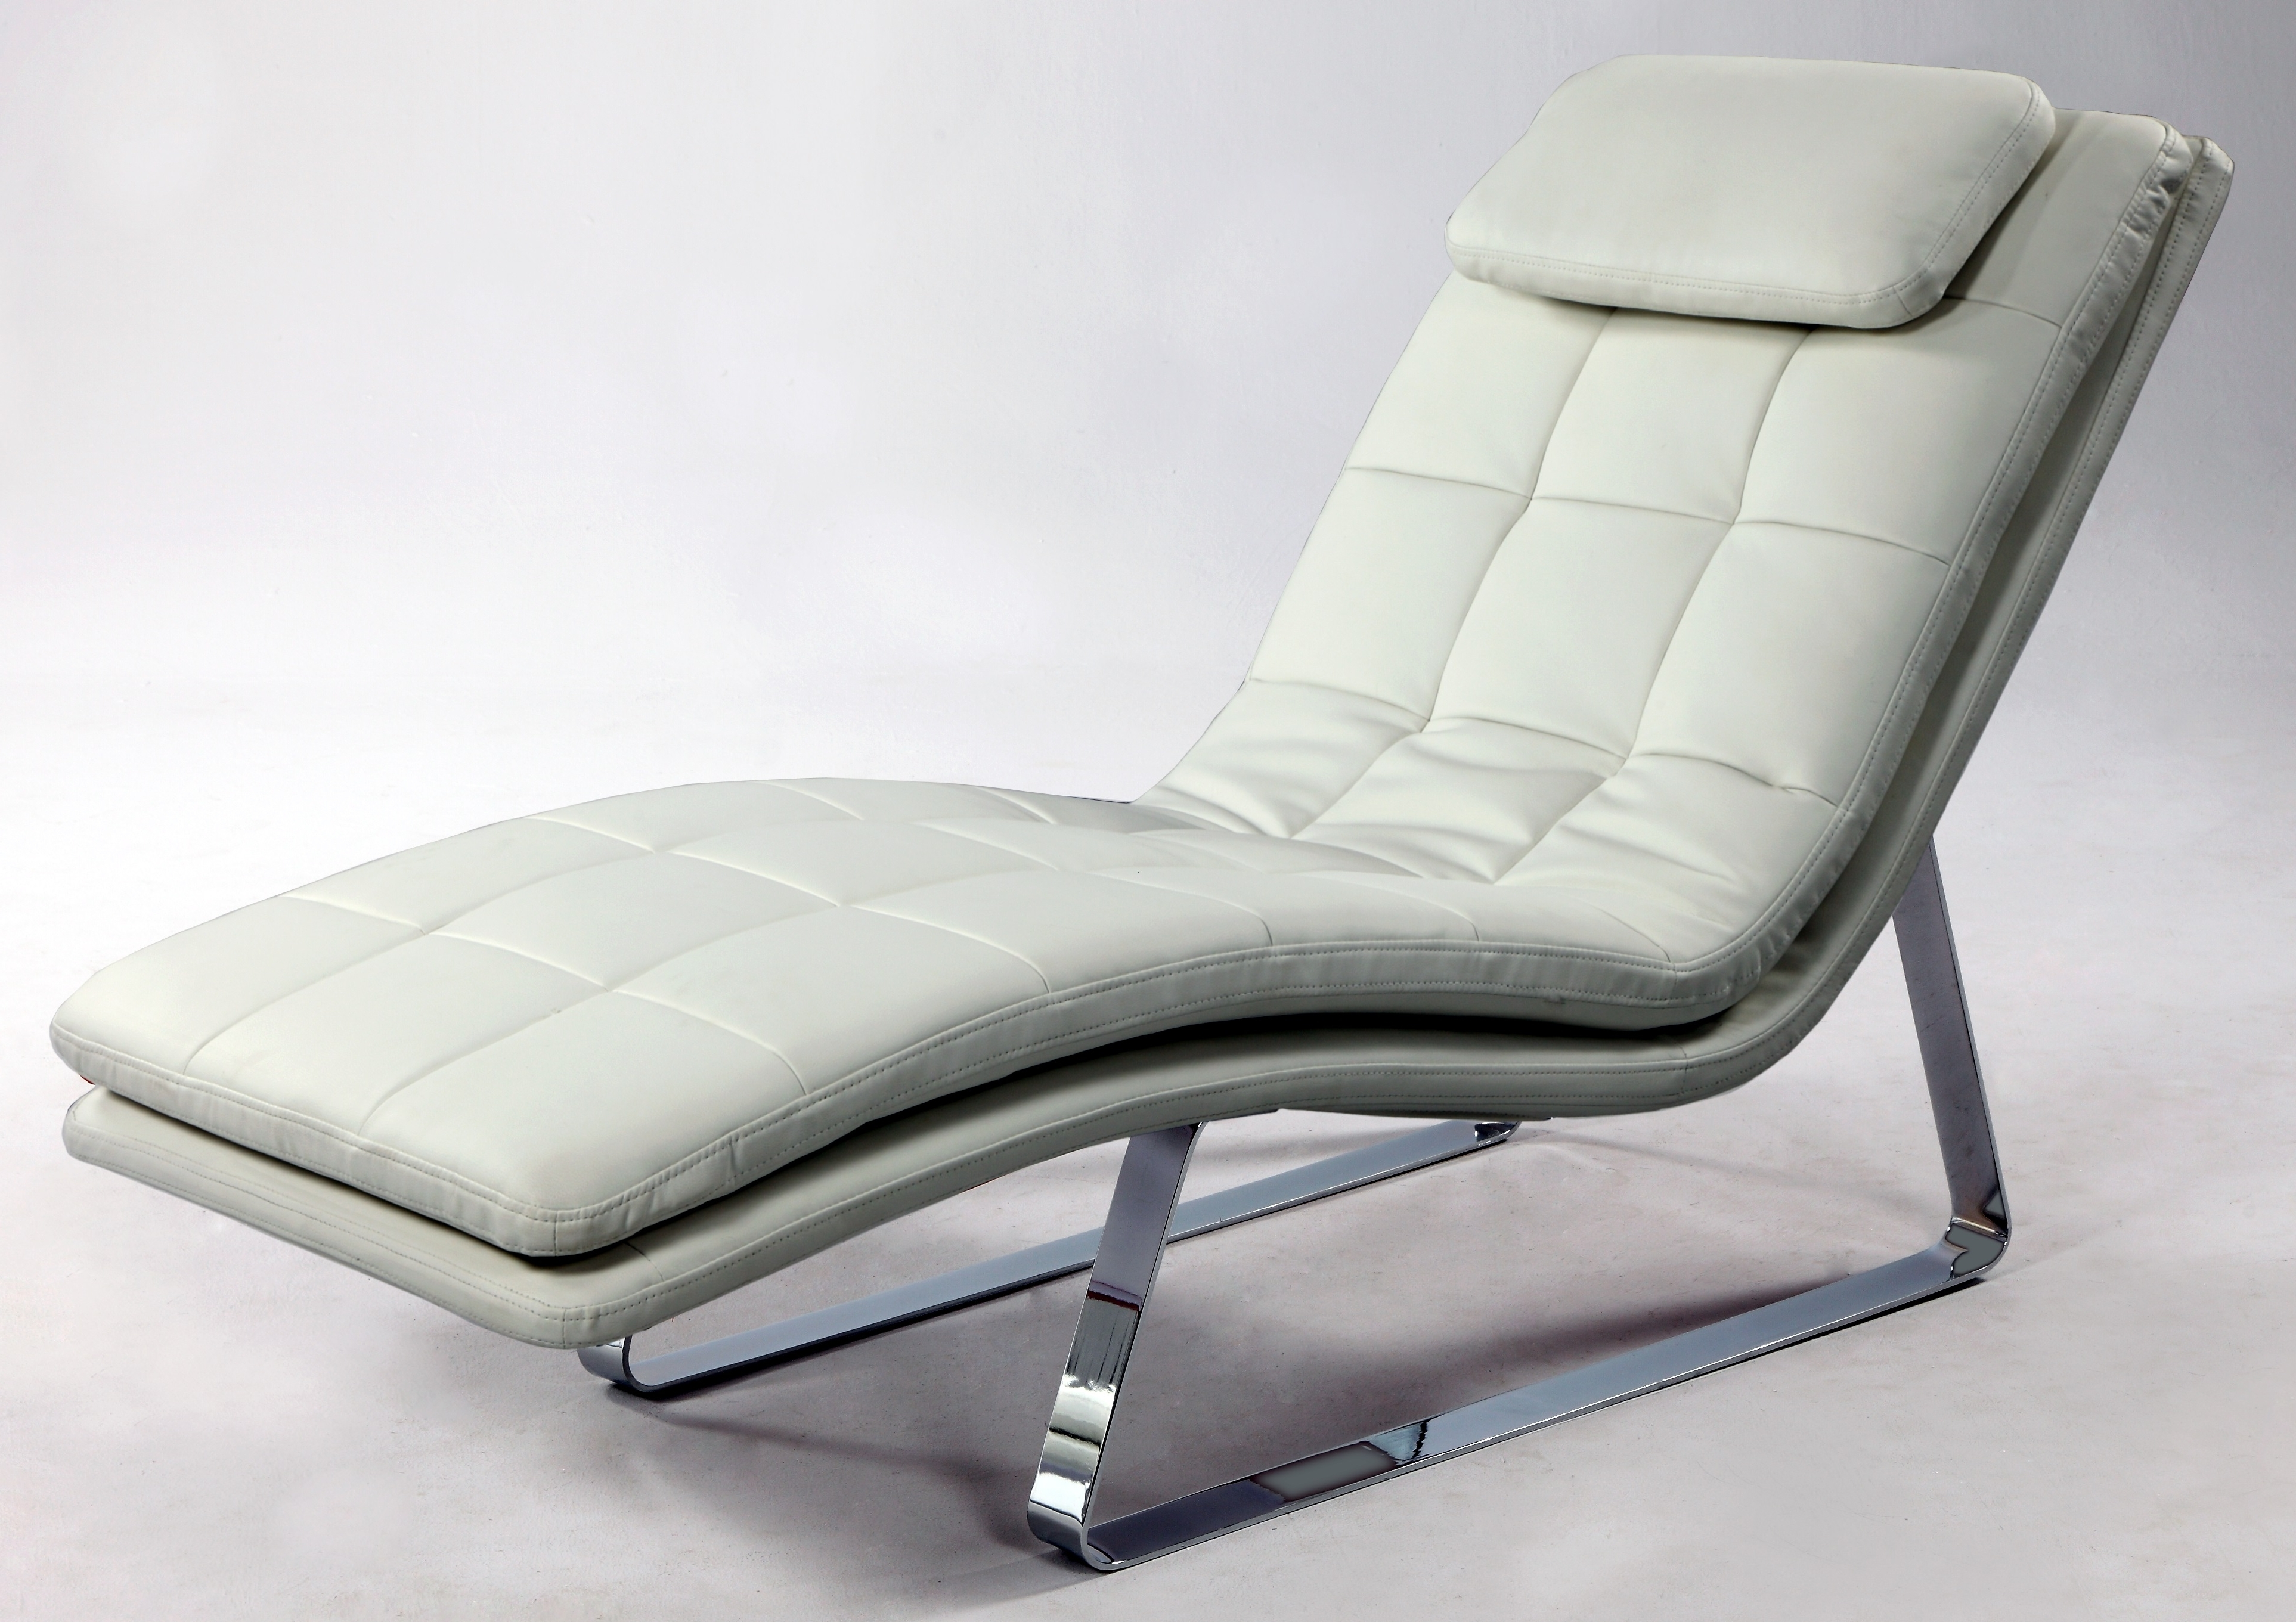 White Leather Chaises Intended For Trendy Full Bonded Leather Tufted Chaise Lounge With Chrome Legs New York (View 6 of 15)